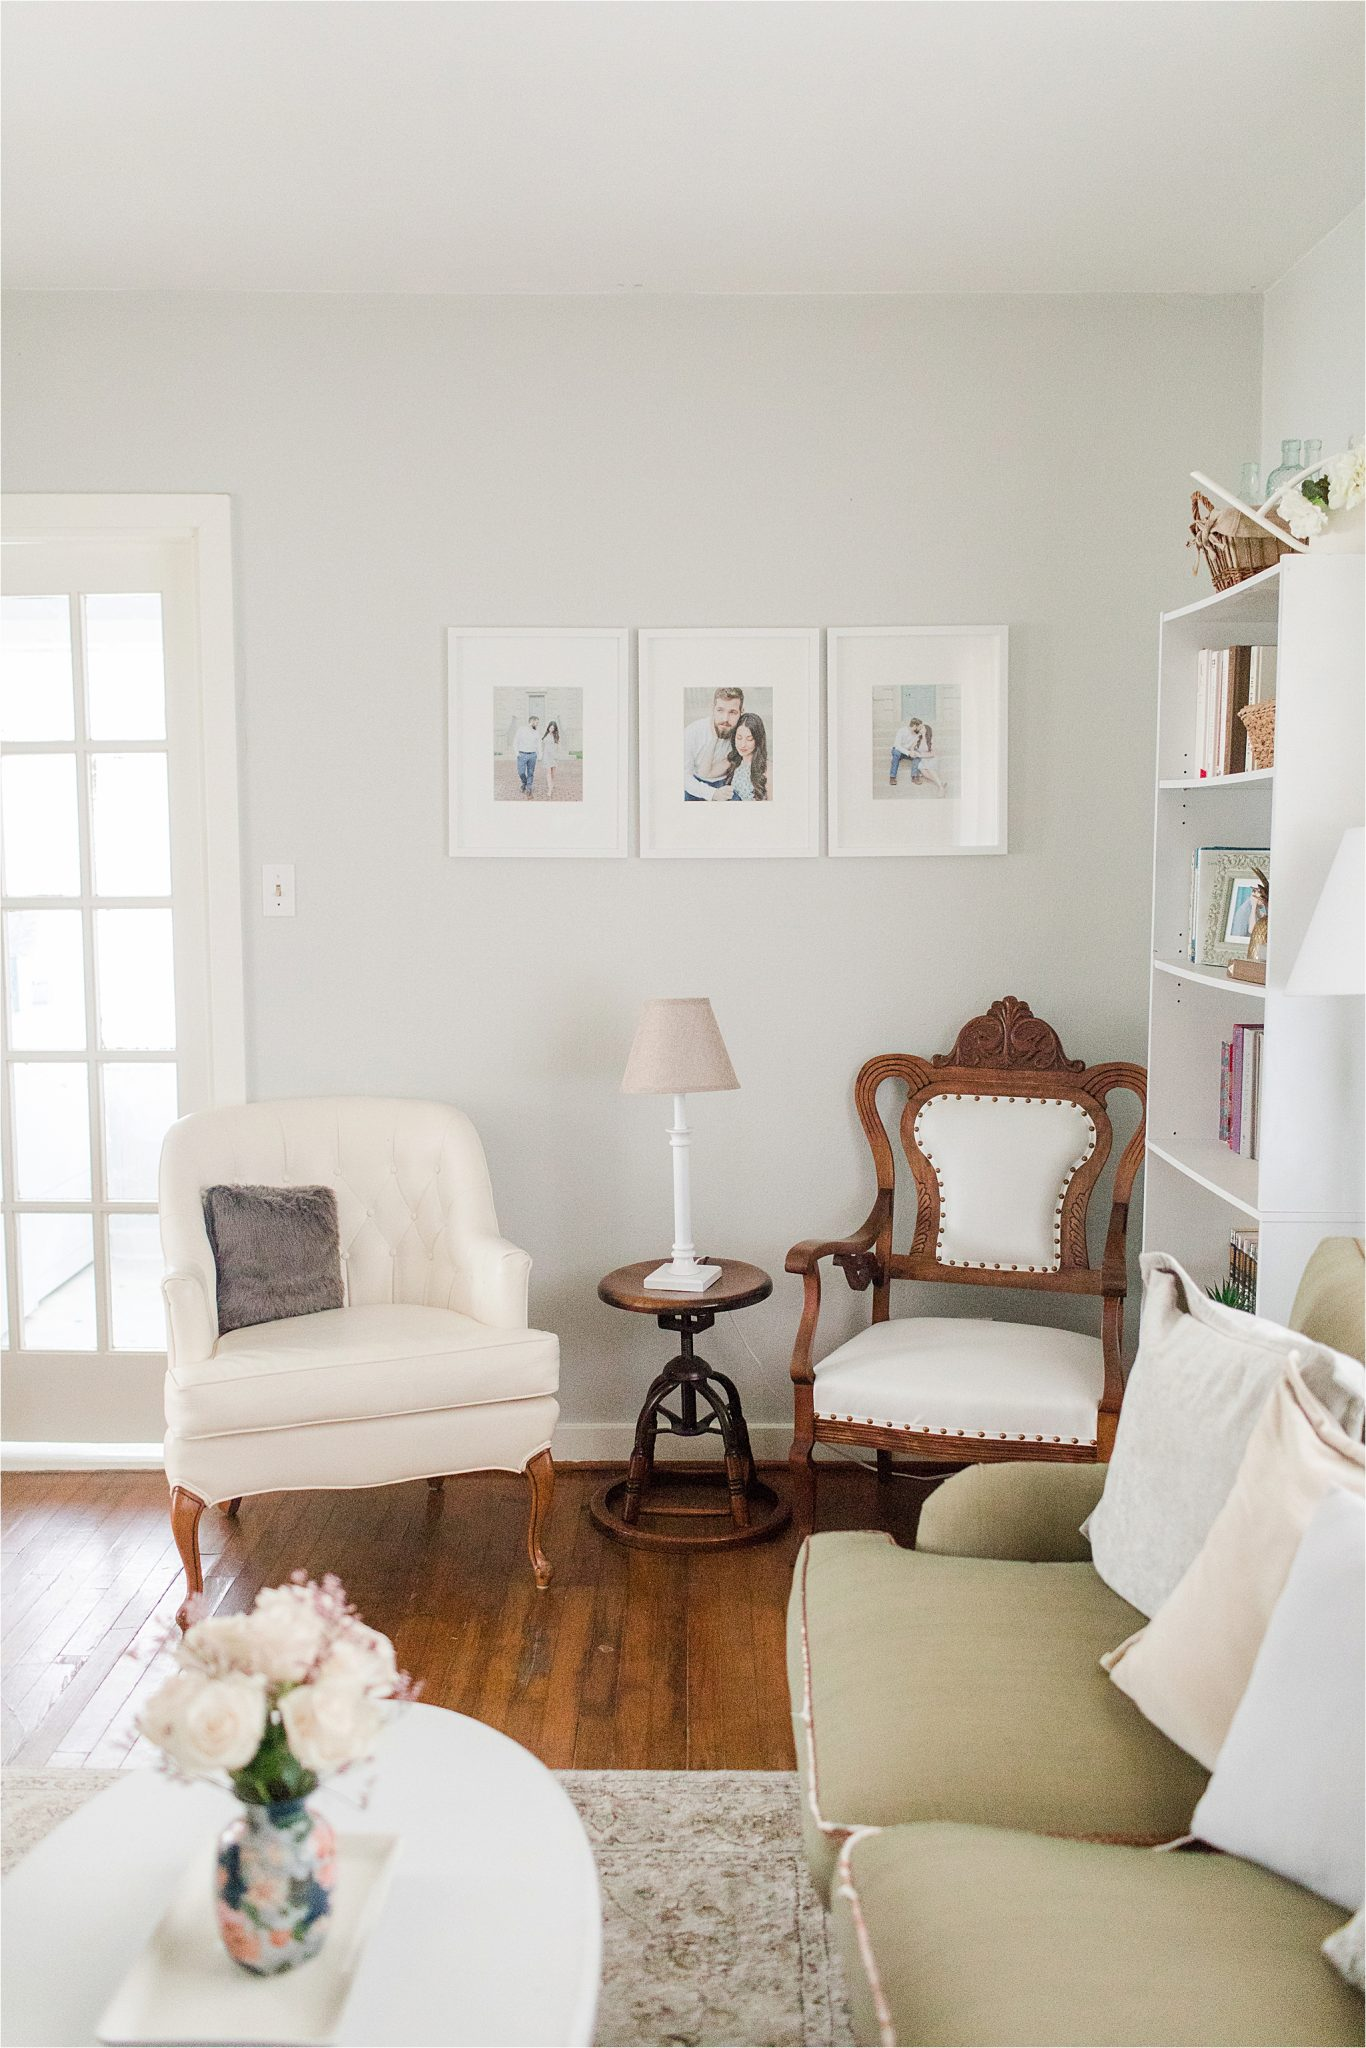 first-home-living-room-vintage-airy-neutrals-family-photos-chair